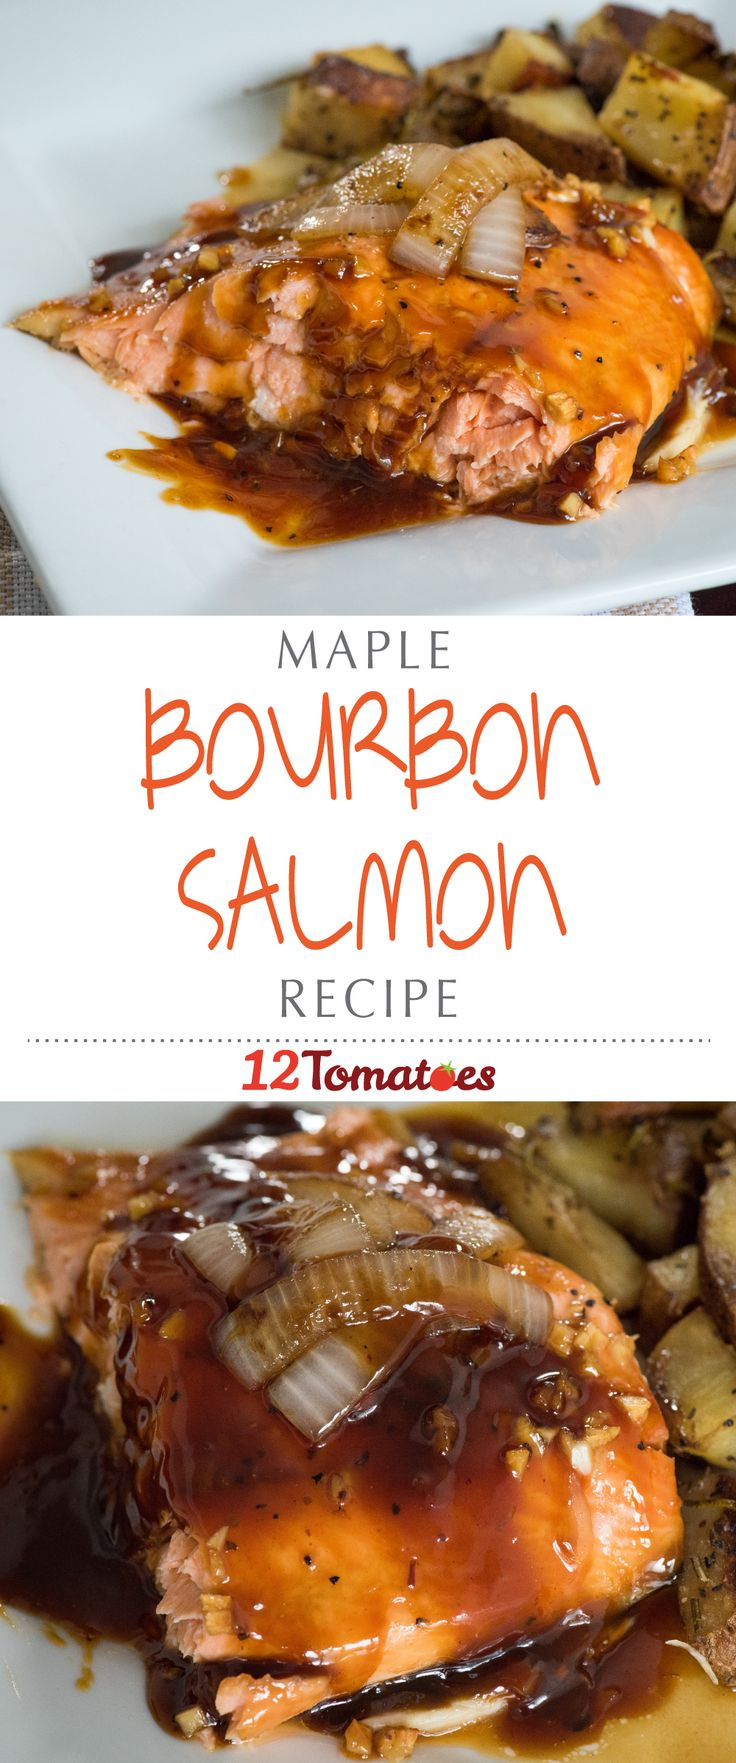 Maple Bourbon Salmon | We reduced the marinade to a syrupy glaze while the salmon baked, and not only smothered our fish in it, but our side dishes as well, it was that good.